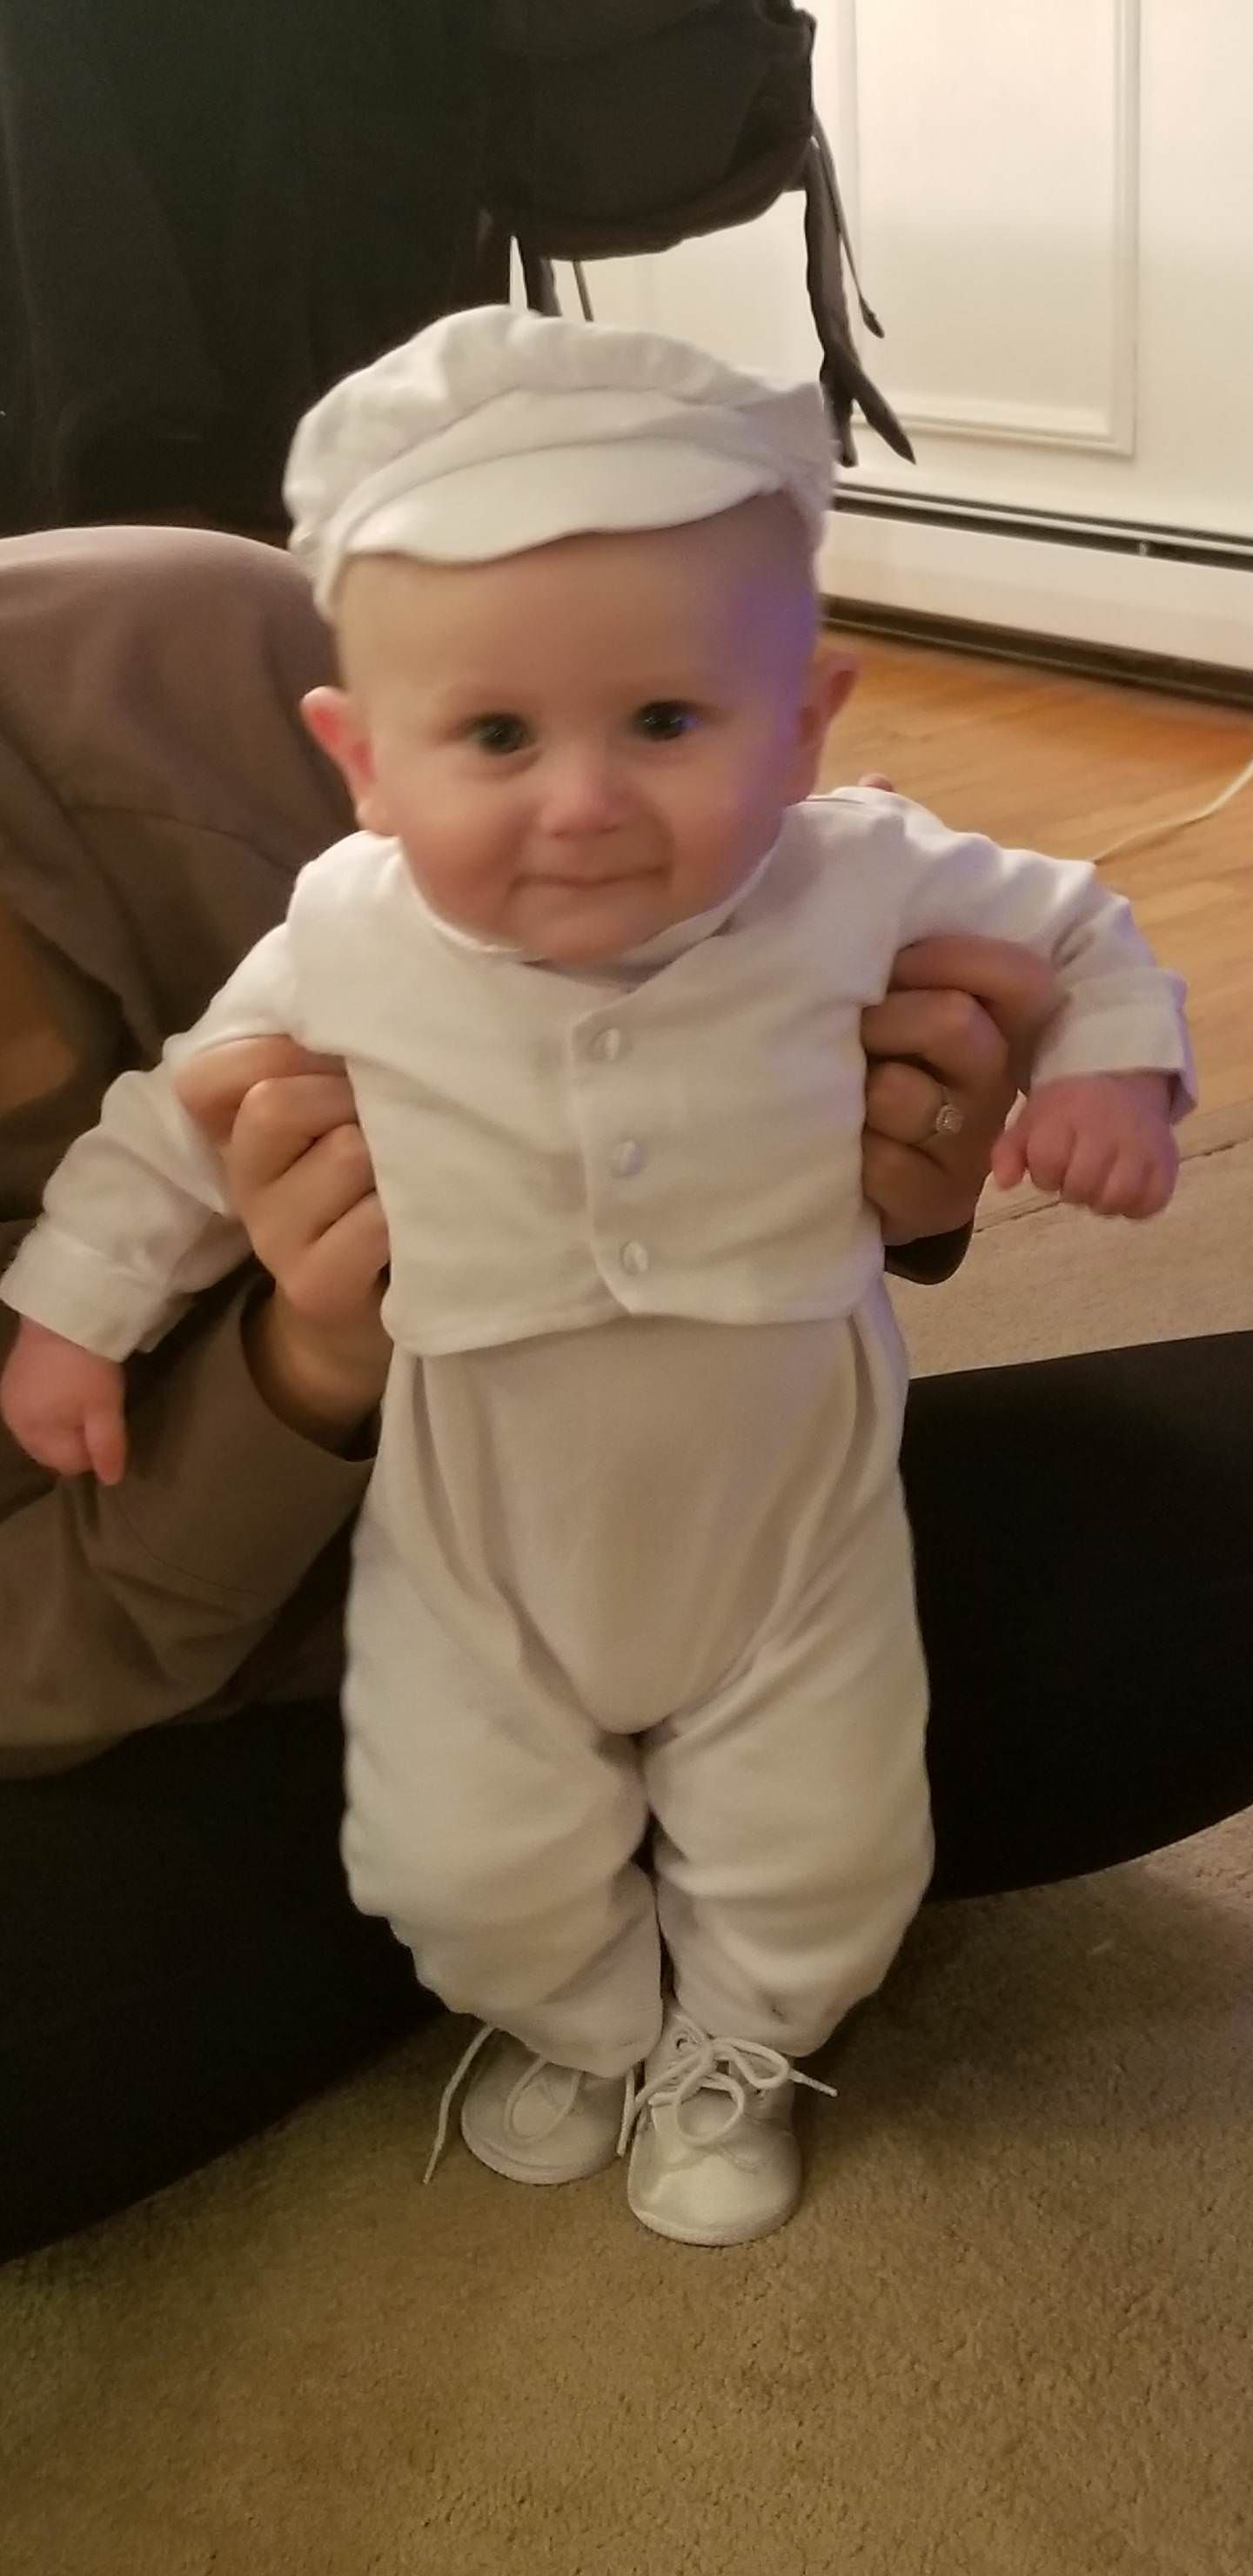 My sons christening tomorrow and the outfit my wife got him makes him look like a 1950's milk delivery man....